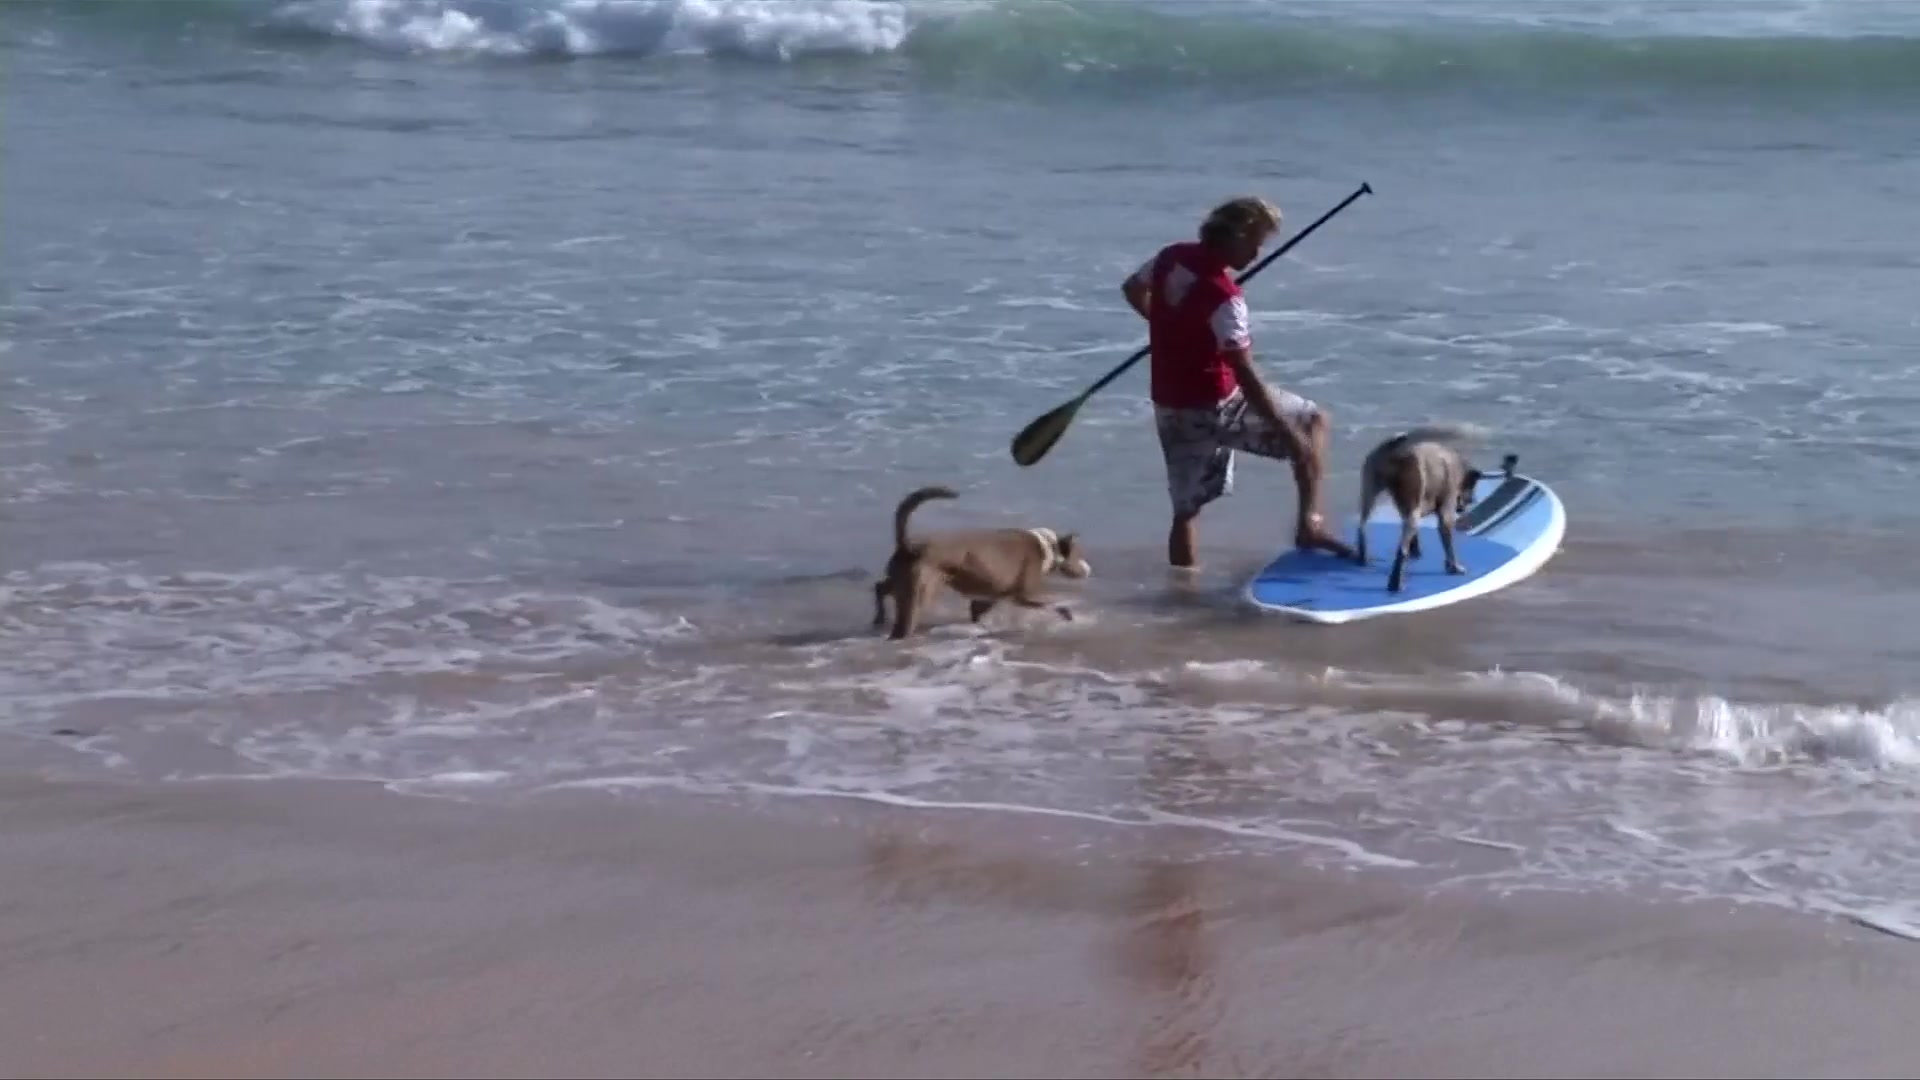 All Paws on Board: Australia's Surfing Rescue Dogs